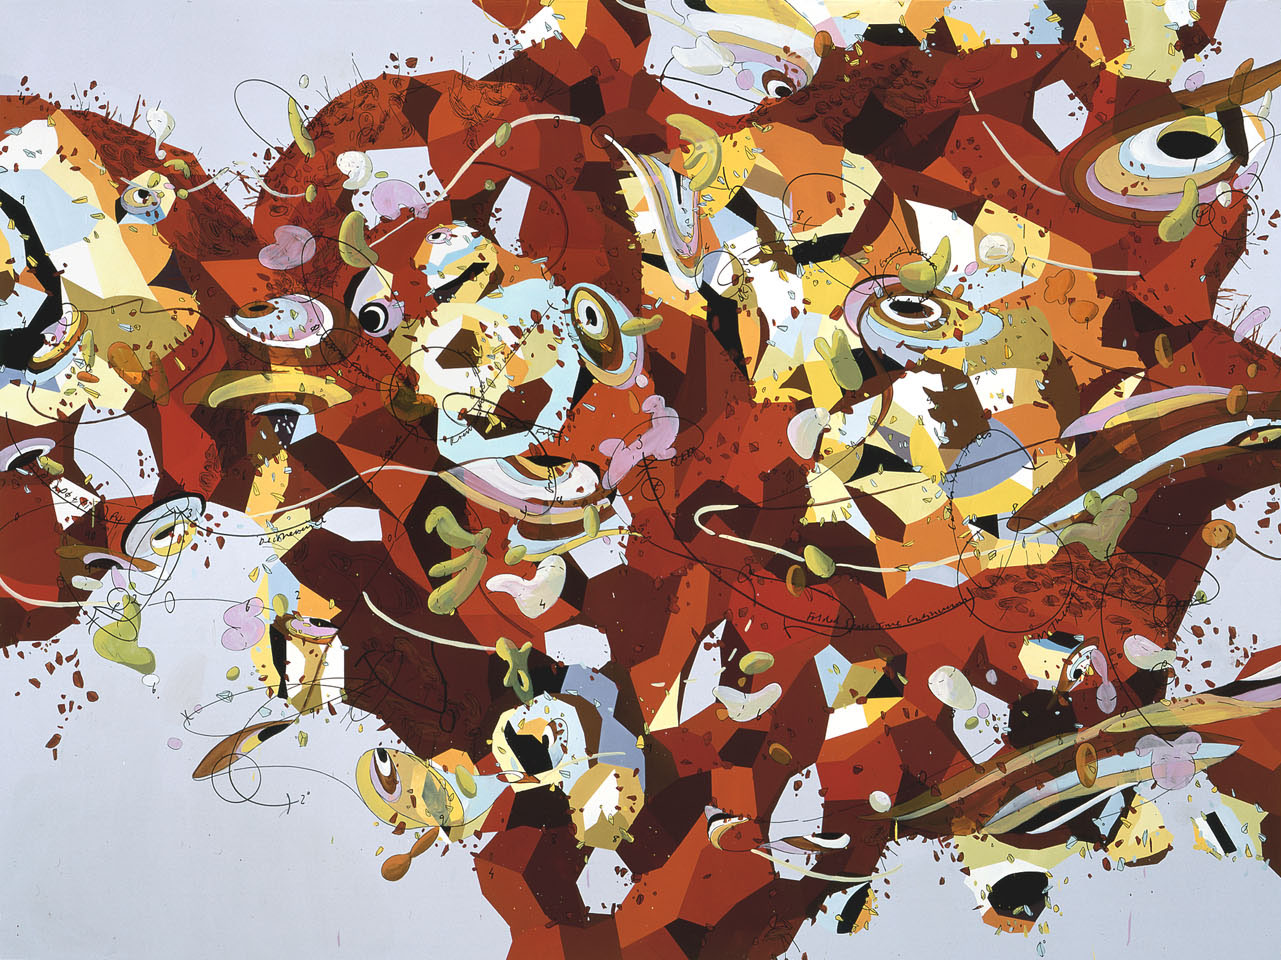 M Theory, 2000 Oil and marker on canvas 81 ¾ x 109 ¾ x ¾ inches SFMOMA Collection, Gift of the artist